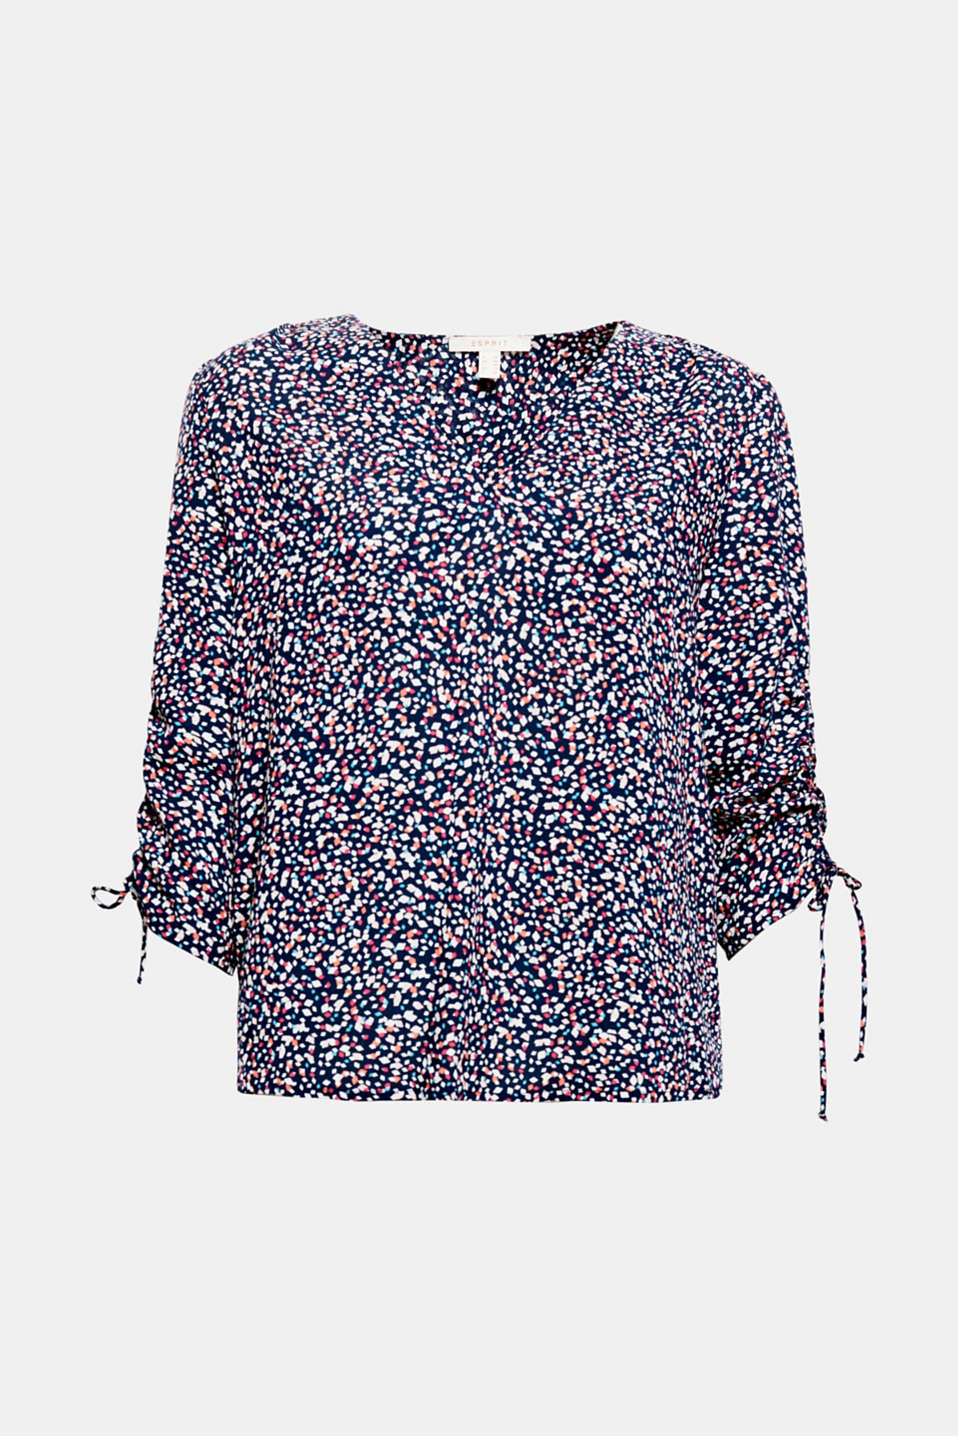 This flowing blouse with colourful fashion prints and gathered three-quarter length sleeves is perfect for starting in spring!